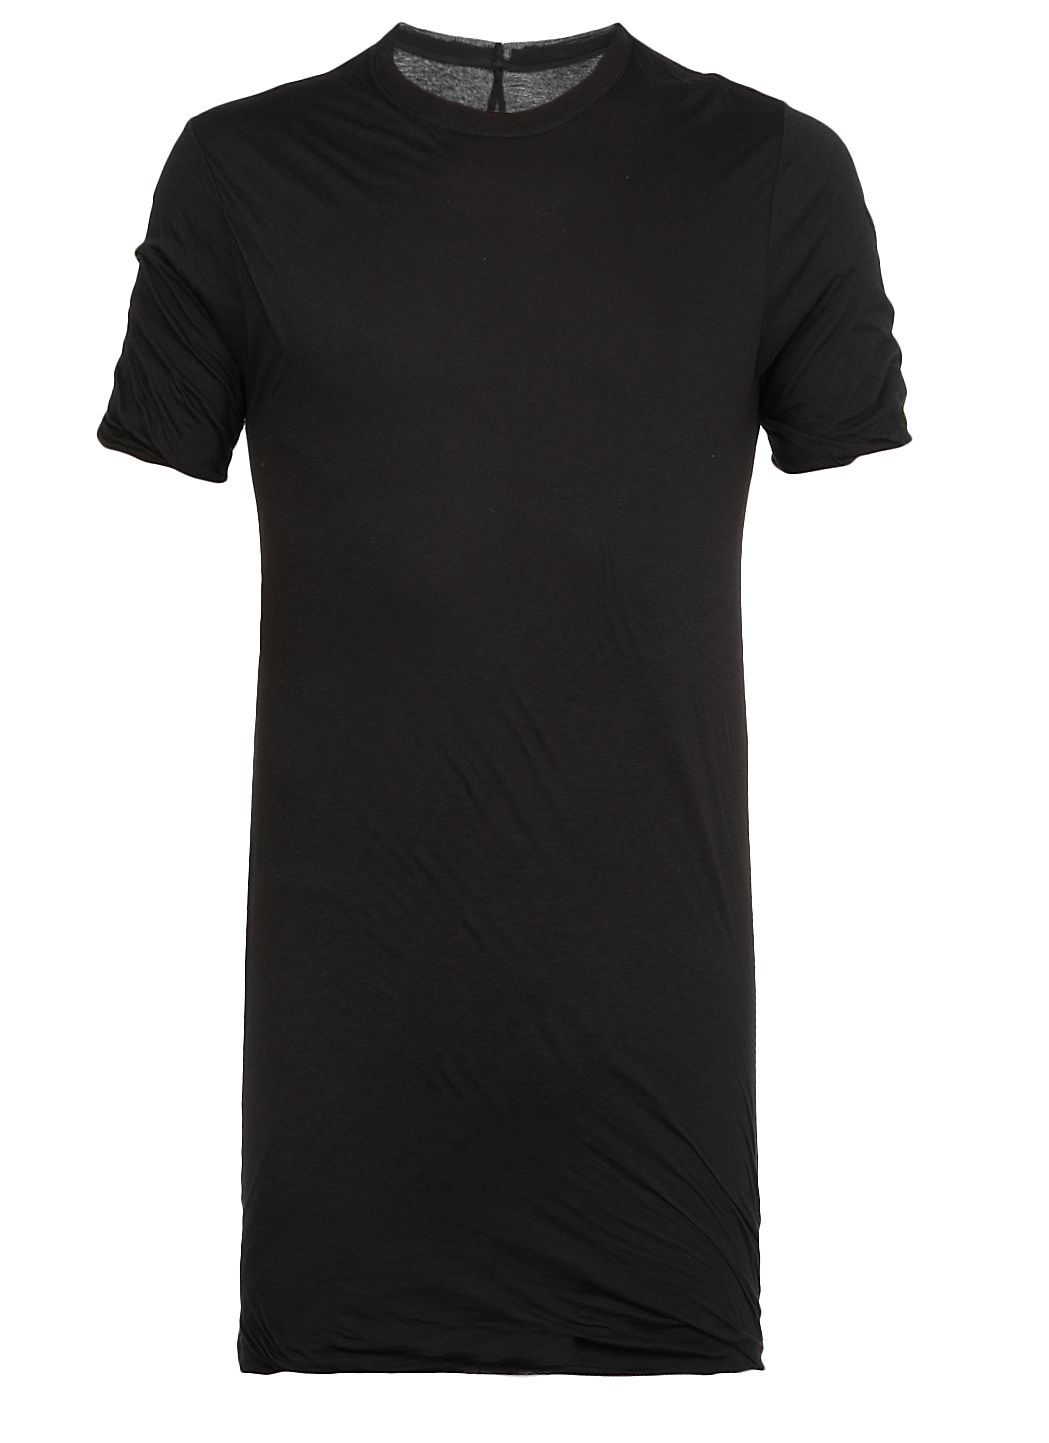 Double ss tee T-shirt